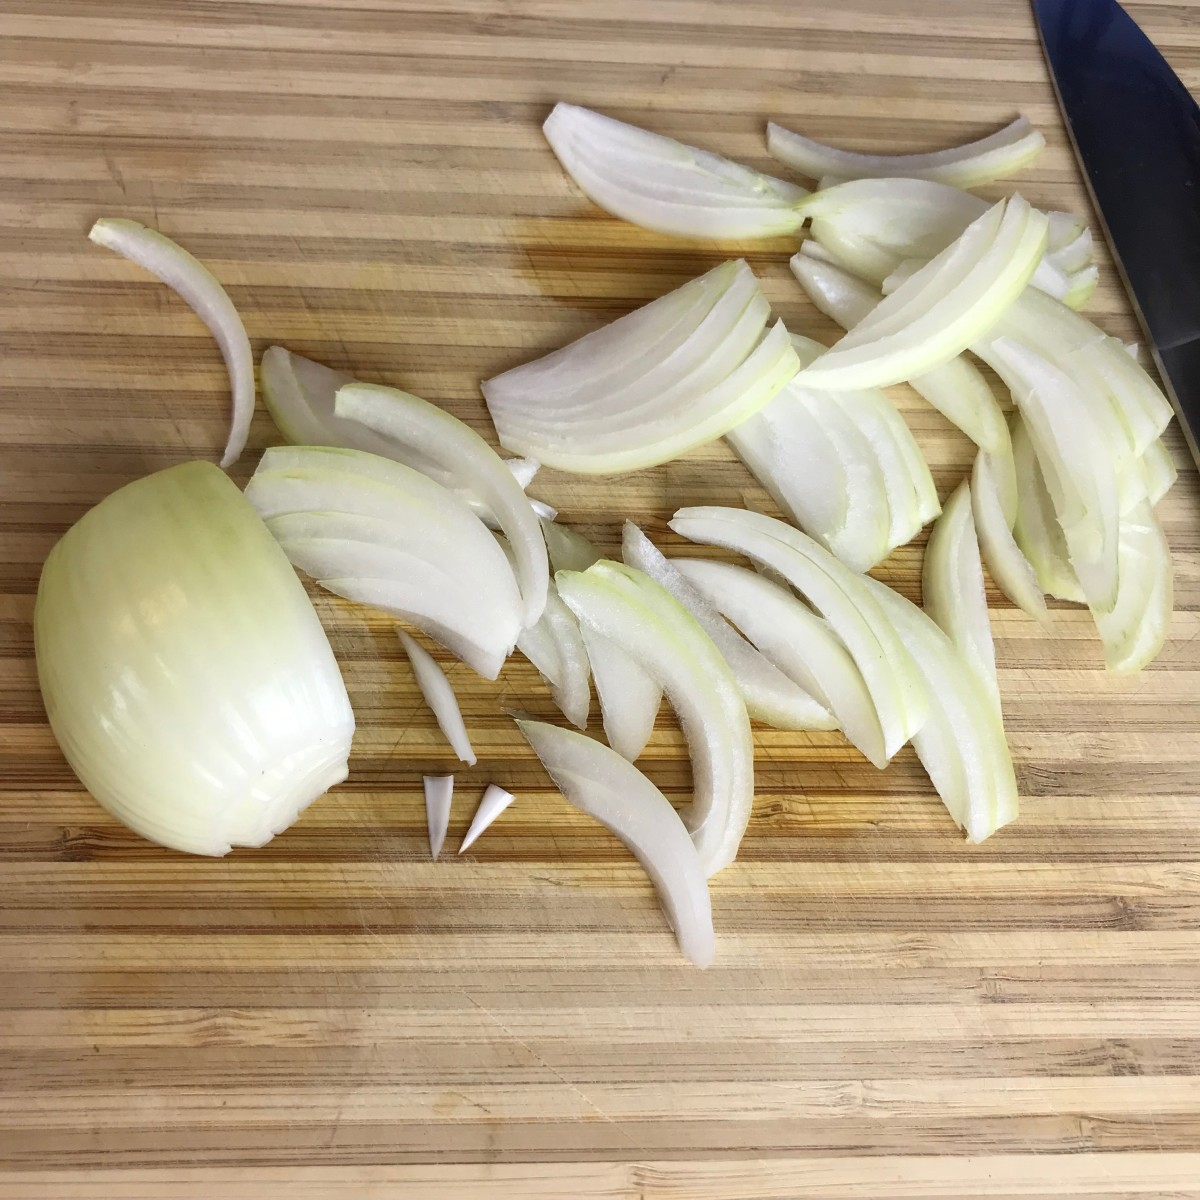 Slice the onions about a quarter inch thick. Any thinner and the juices will cook out too quickly causing the onions to burn. Any thicker and they won't caramelize properly. When cutting the onions go against the grain just like in the photo.